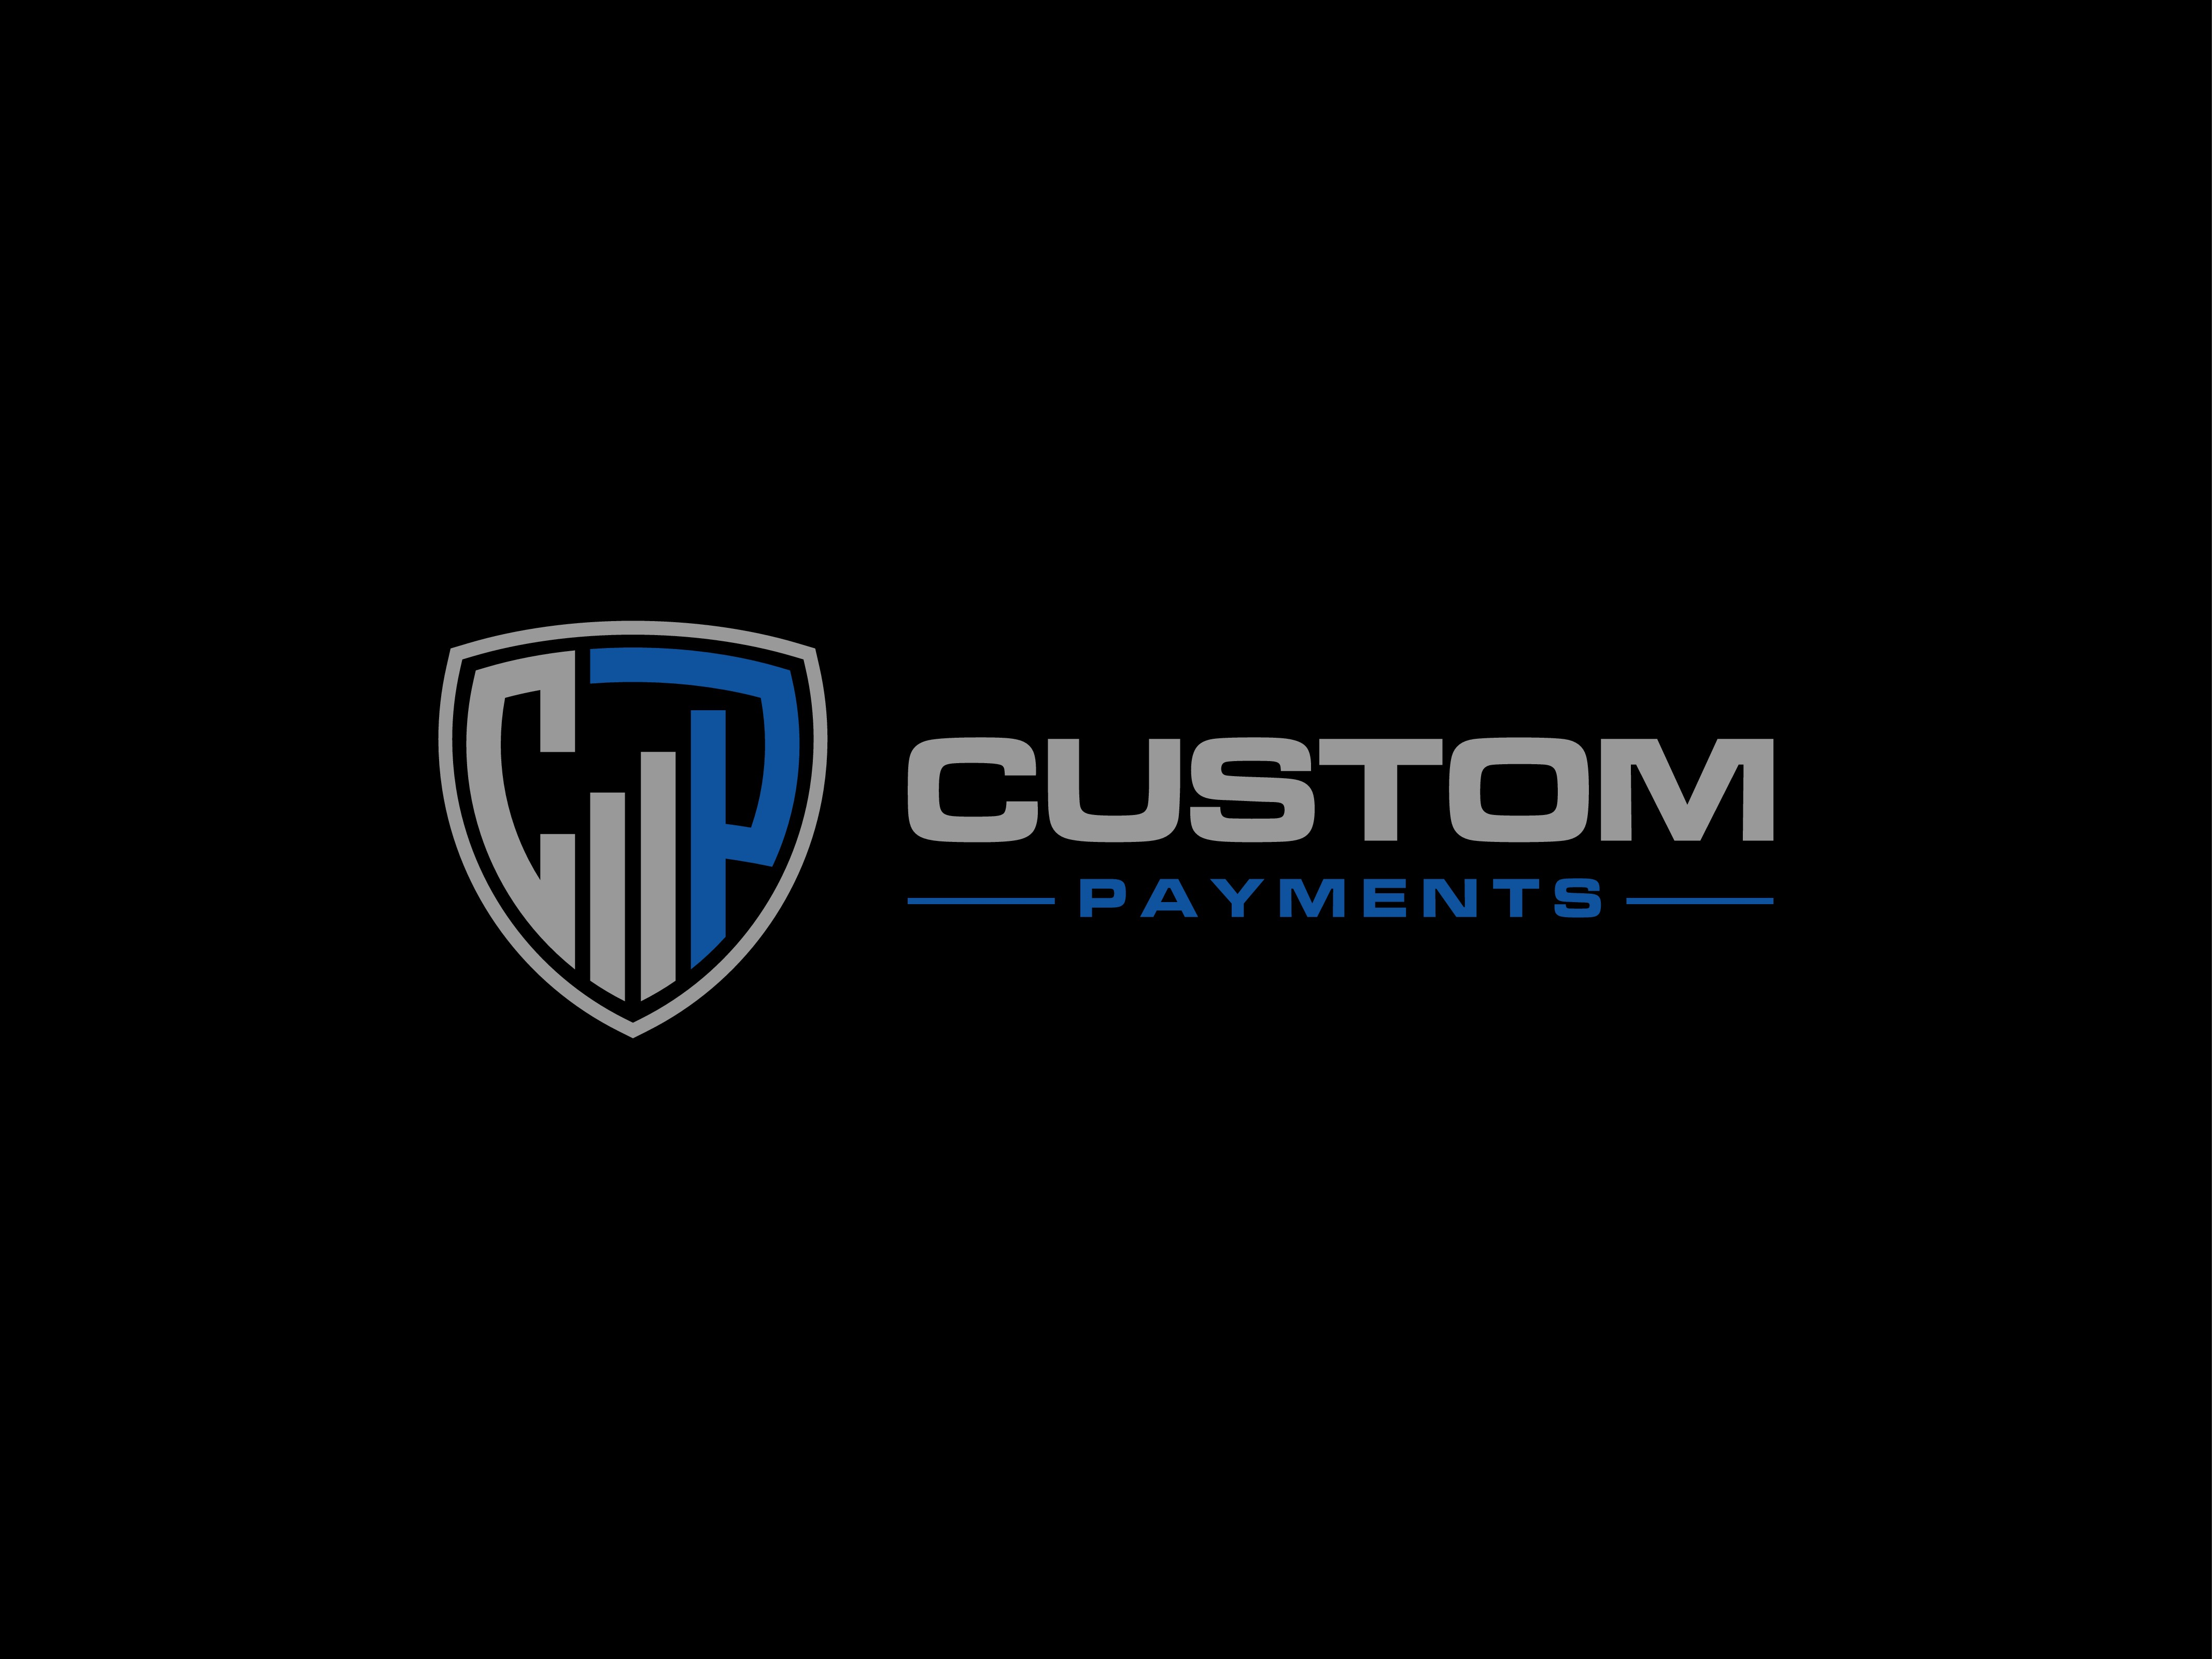 Creativity to show customization & secure logo for new internet shop!